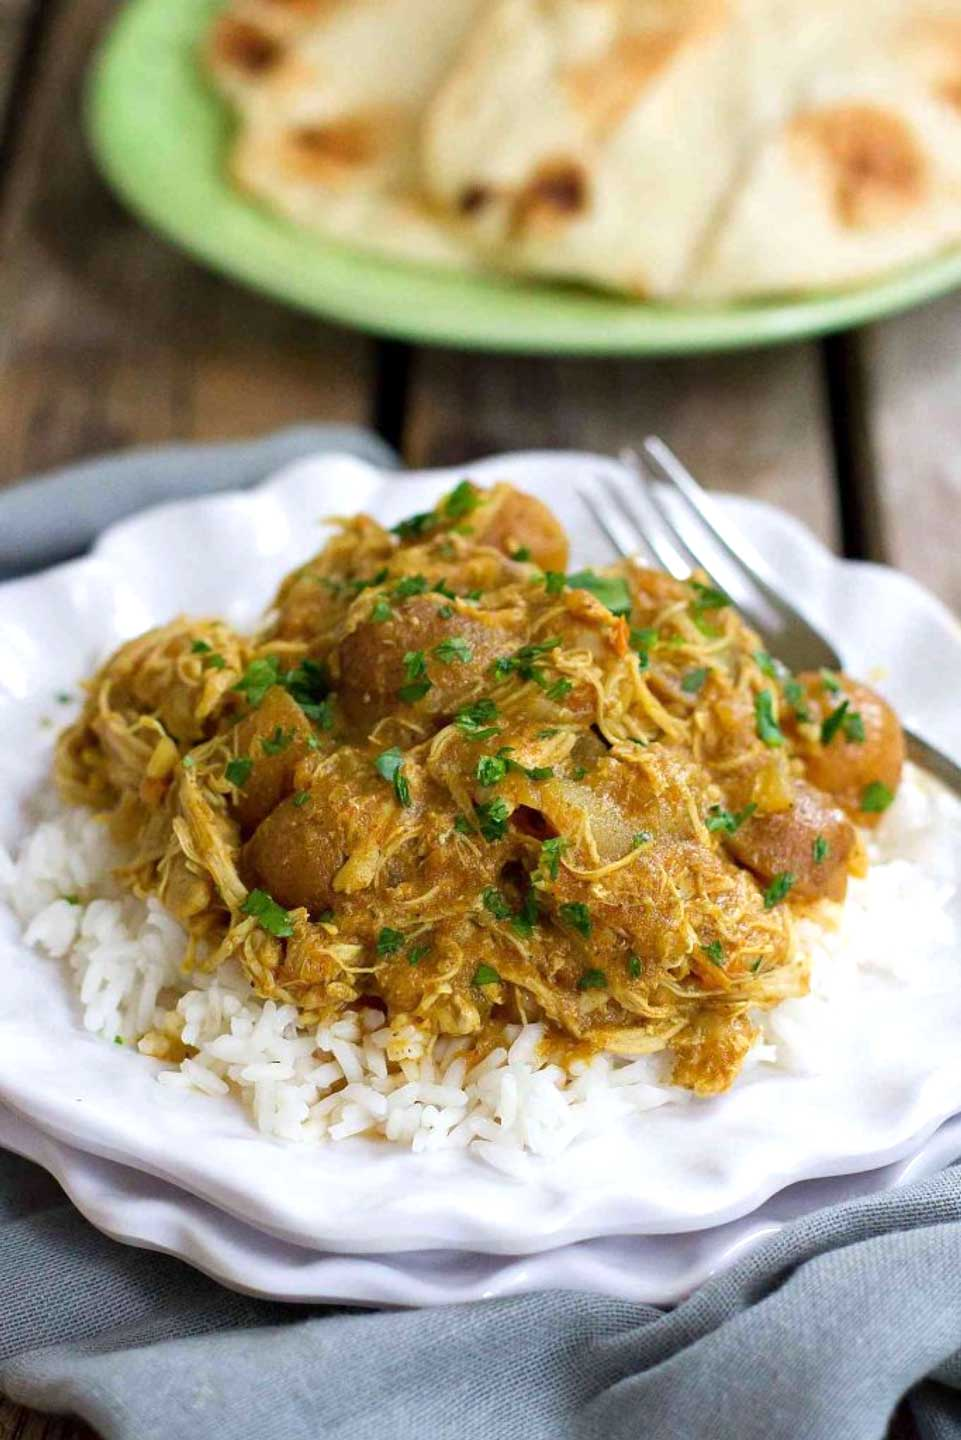 This easy, healthy Instant Pot Chicken Curry Recipe with Potatoes from Dara at Cookin' Canuck is just one of 20 deliciously quick recipes we've got for you today – be sure to check 'em all out! And then ... Break out that pressure cooker, and dinner will be done in a jiffy!